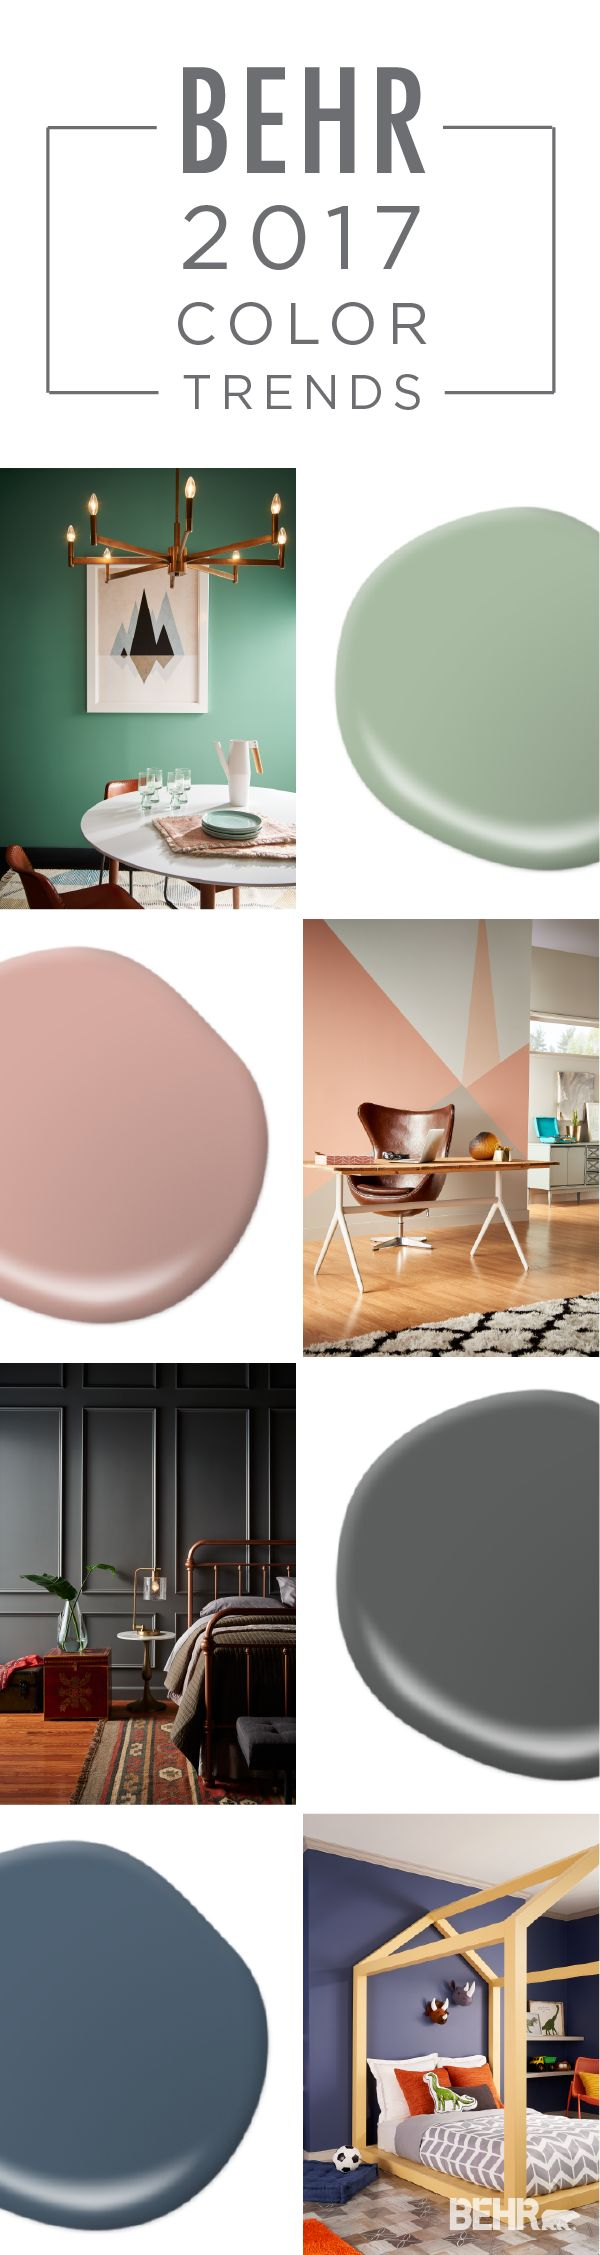 Make Each Room Of Your Home A Unique Design Experience With These Shades From The BEHR 2017 Color Trends Check Out Shade Balanced To Refresh